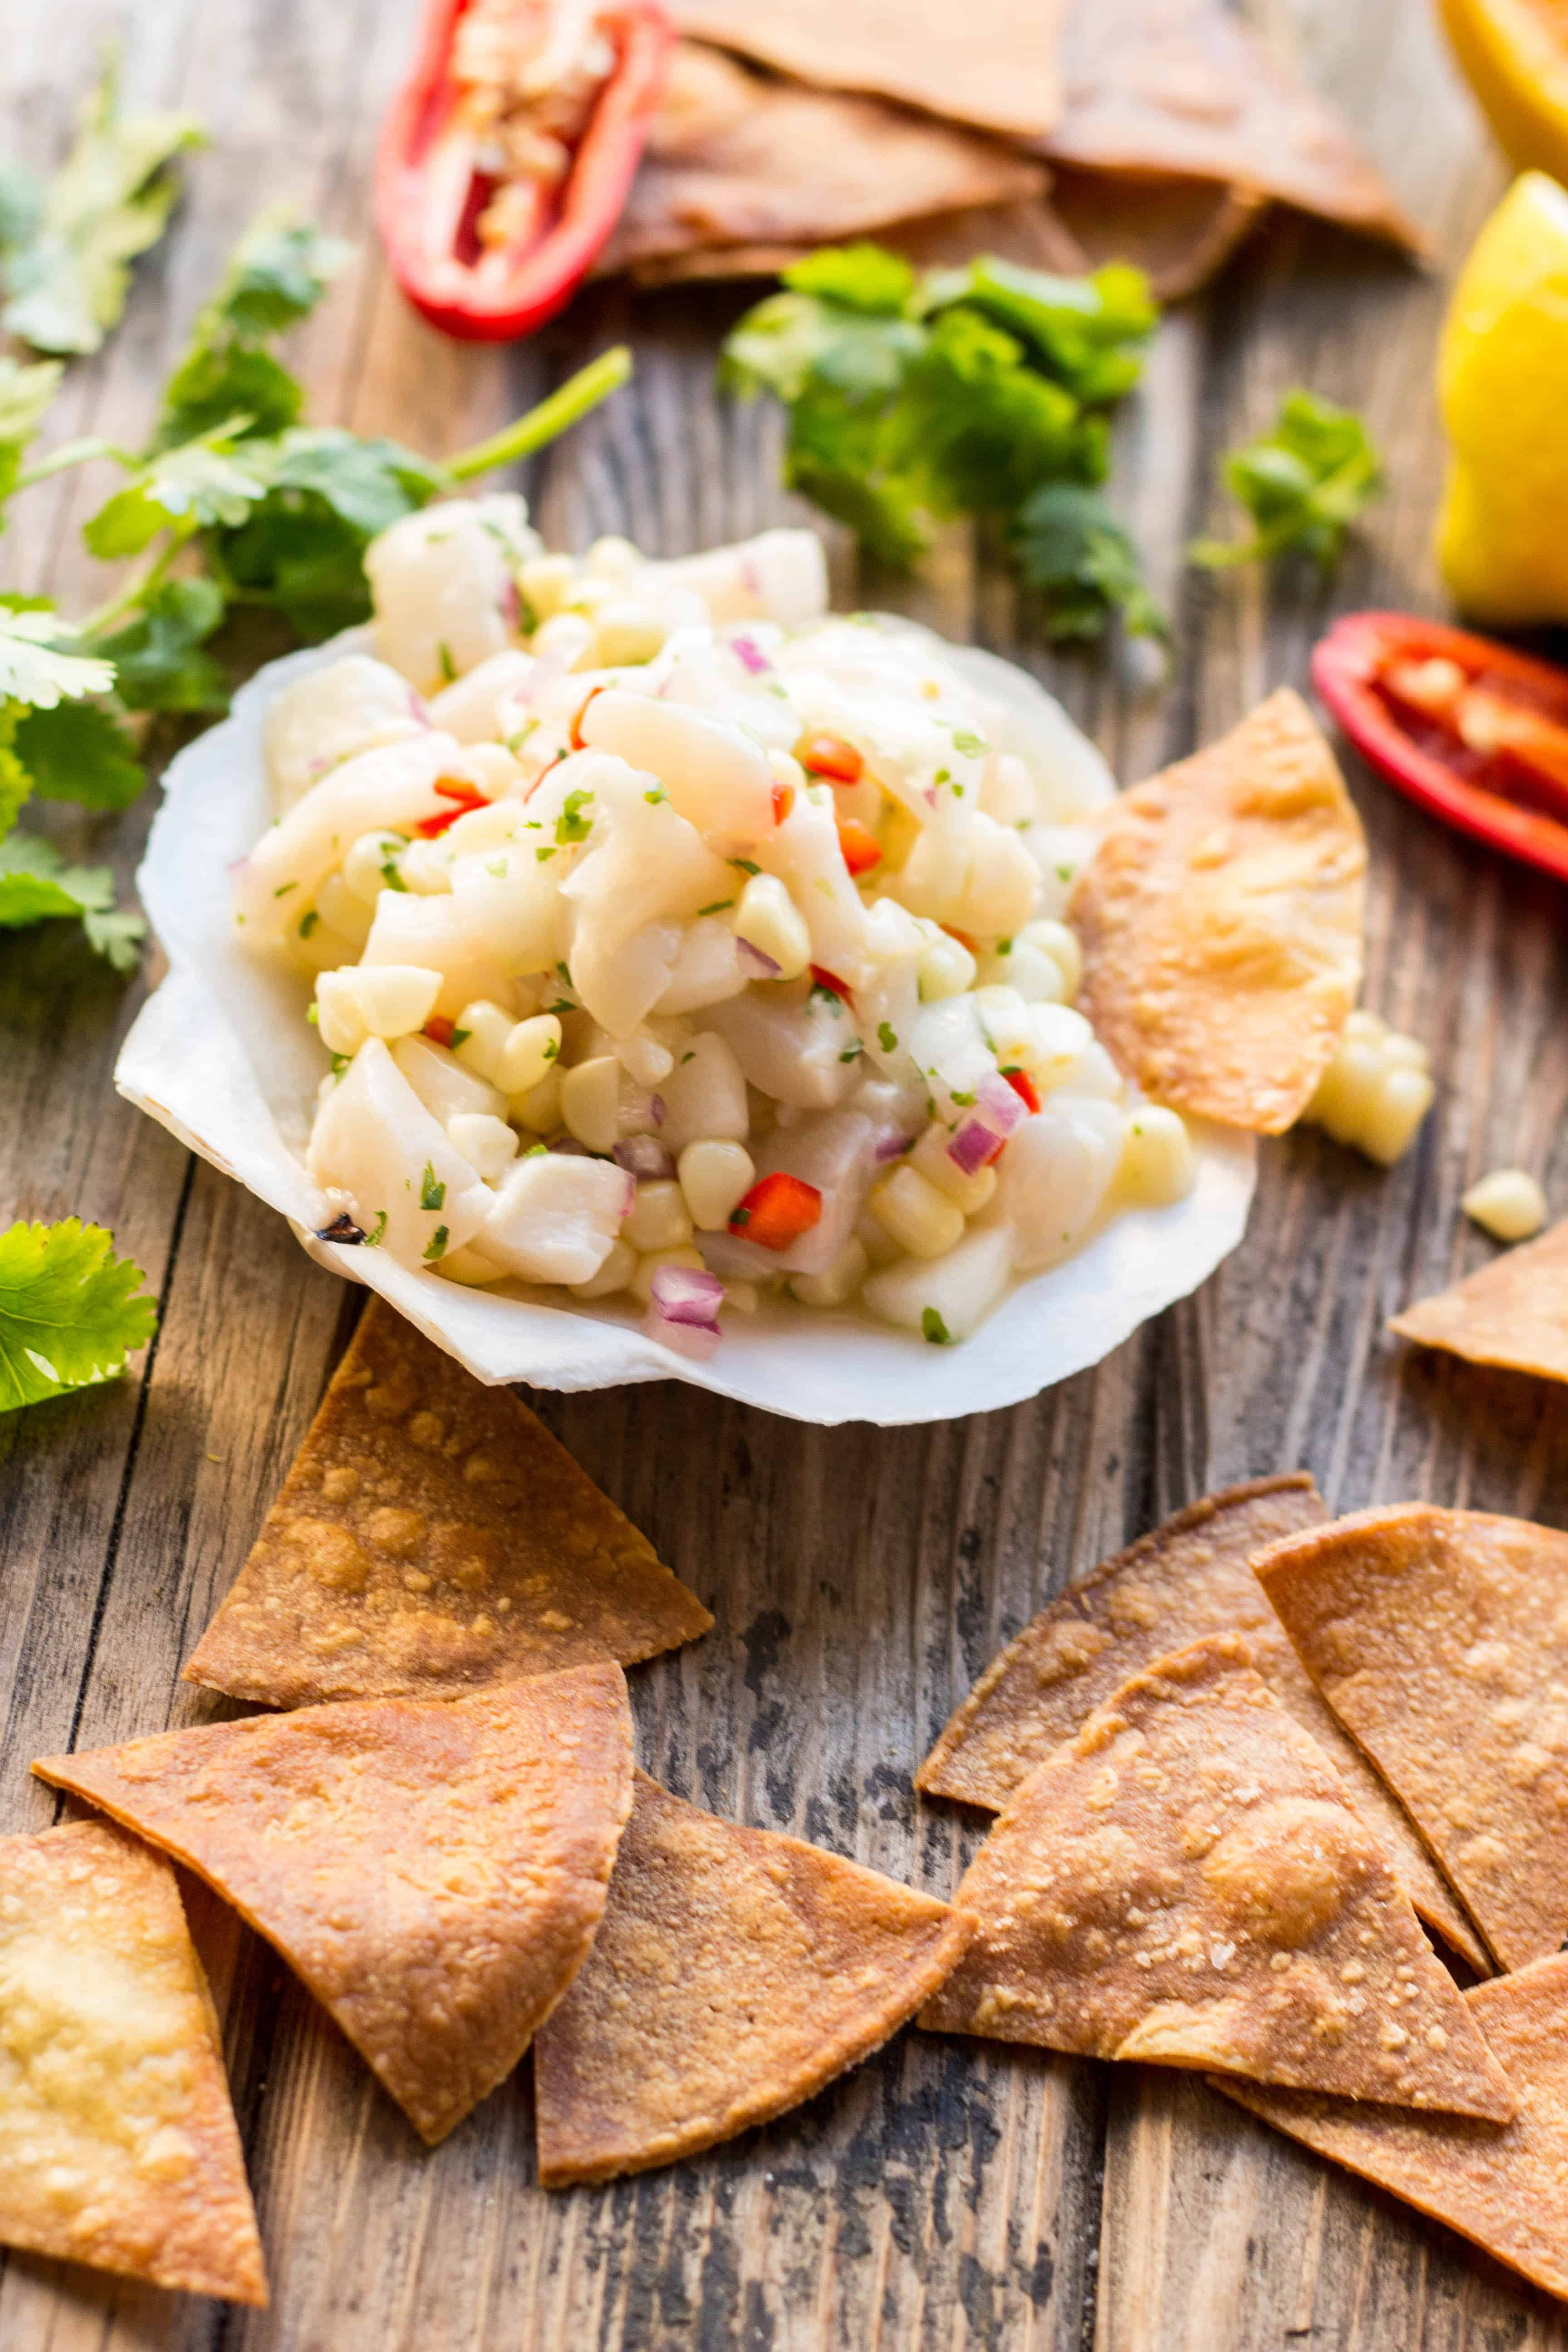 Want more seafood recipes? Check out: Scallops with Pomegranate Bureau ...